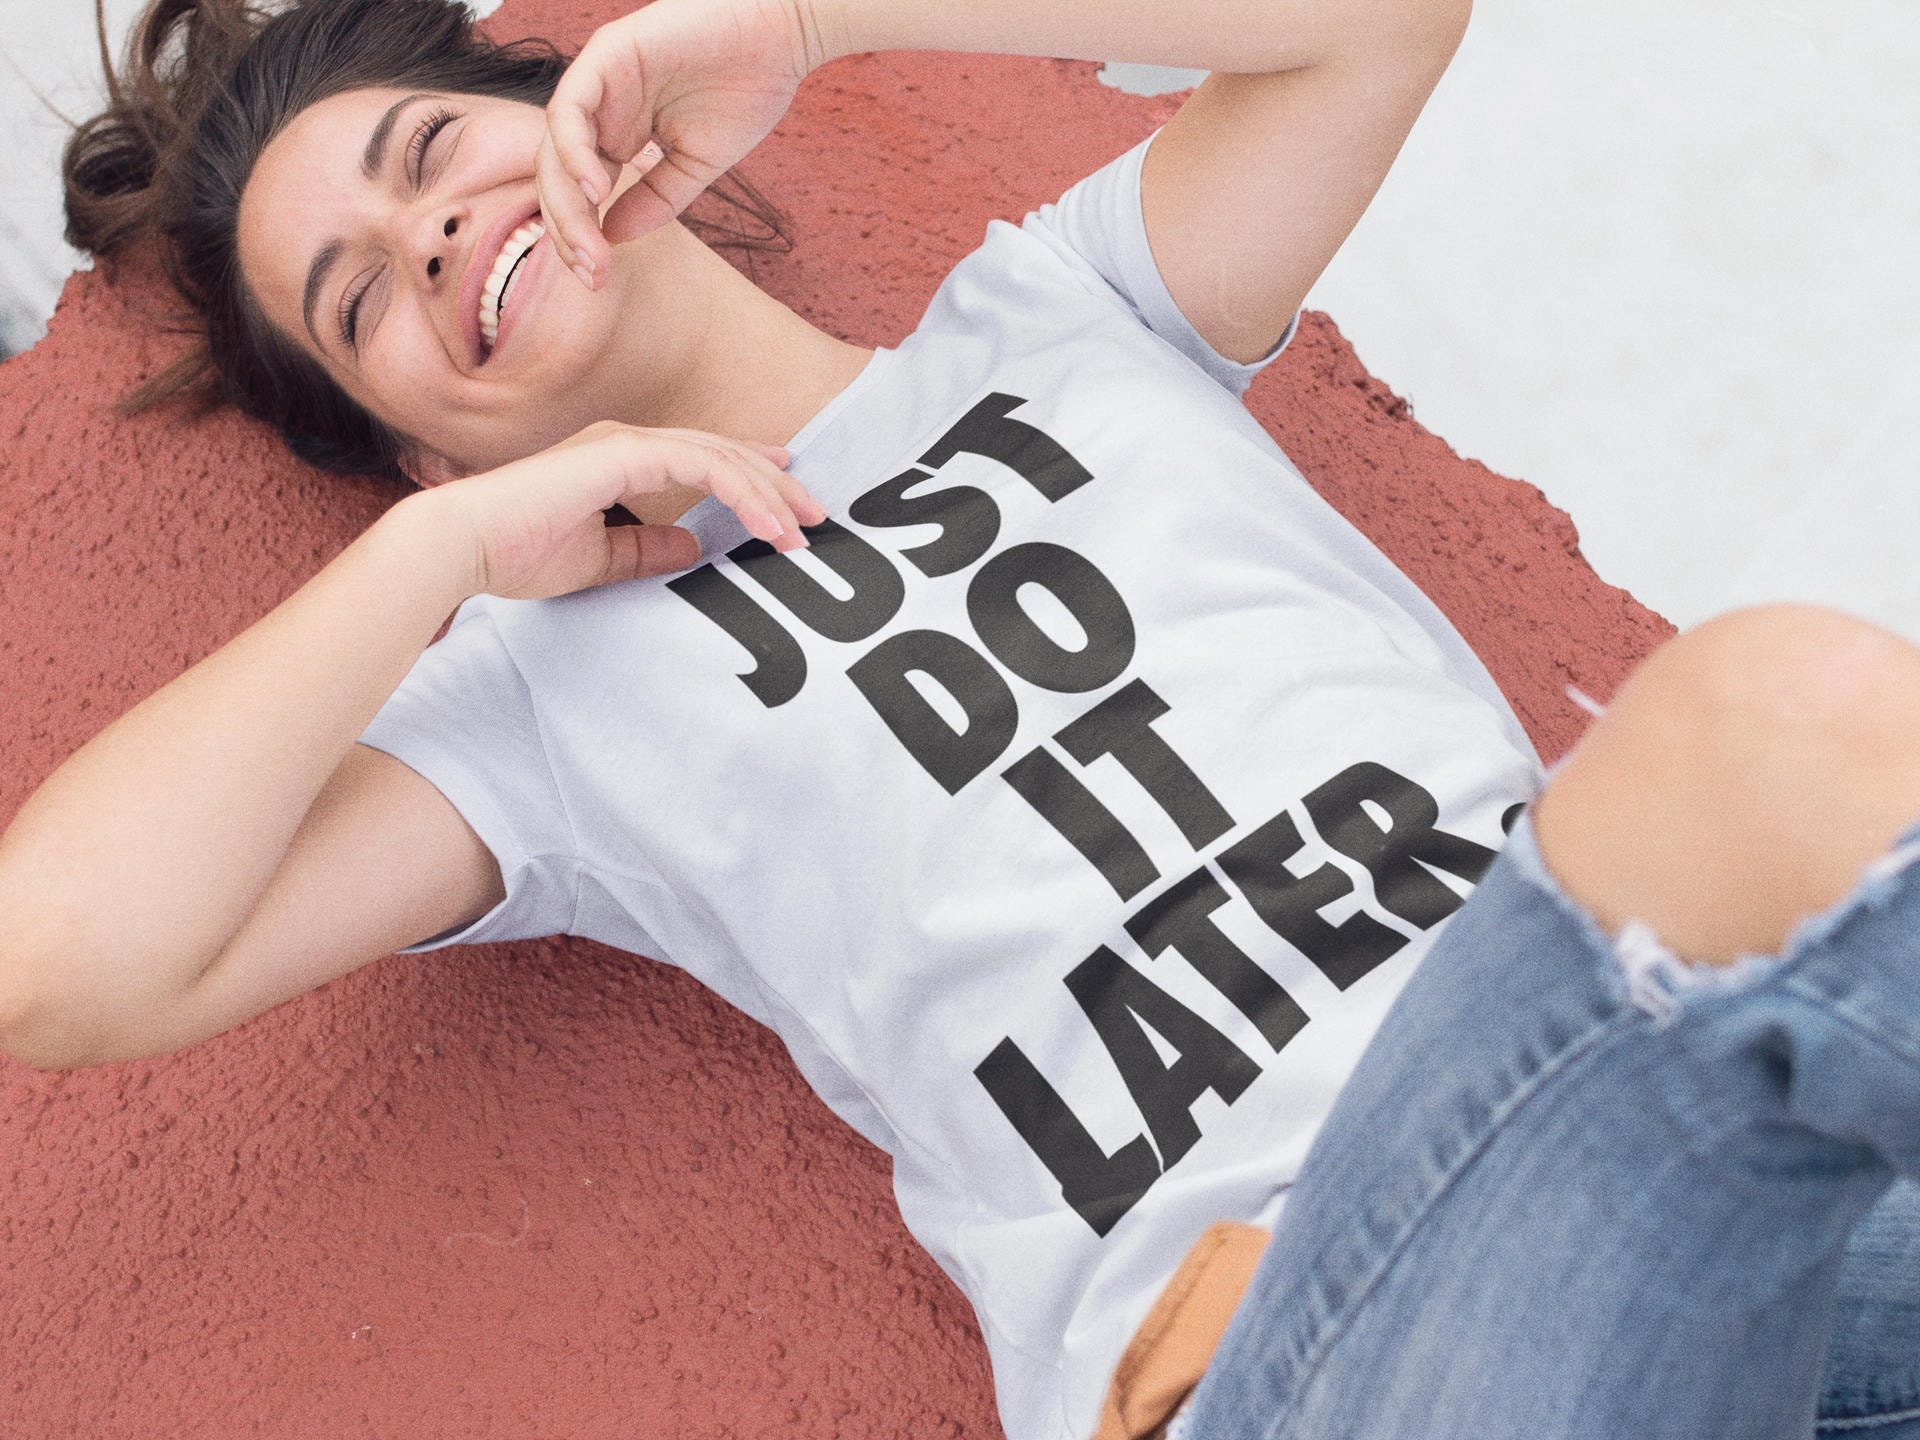 Just Do It Later Shirt Funny Tshirt Womens Sayings Tee Cute Fashion Clothing Unisex Adult Sizing Best Gift For Her